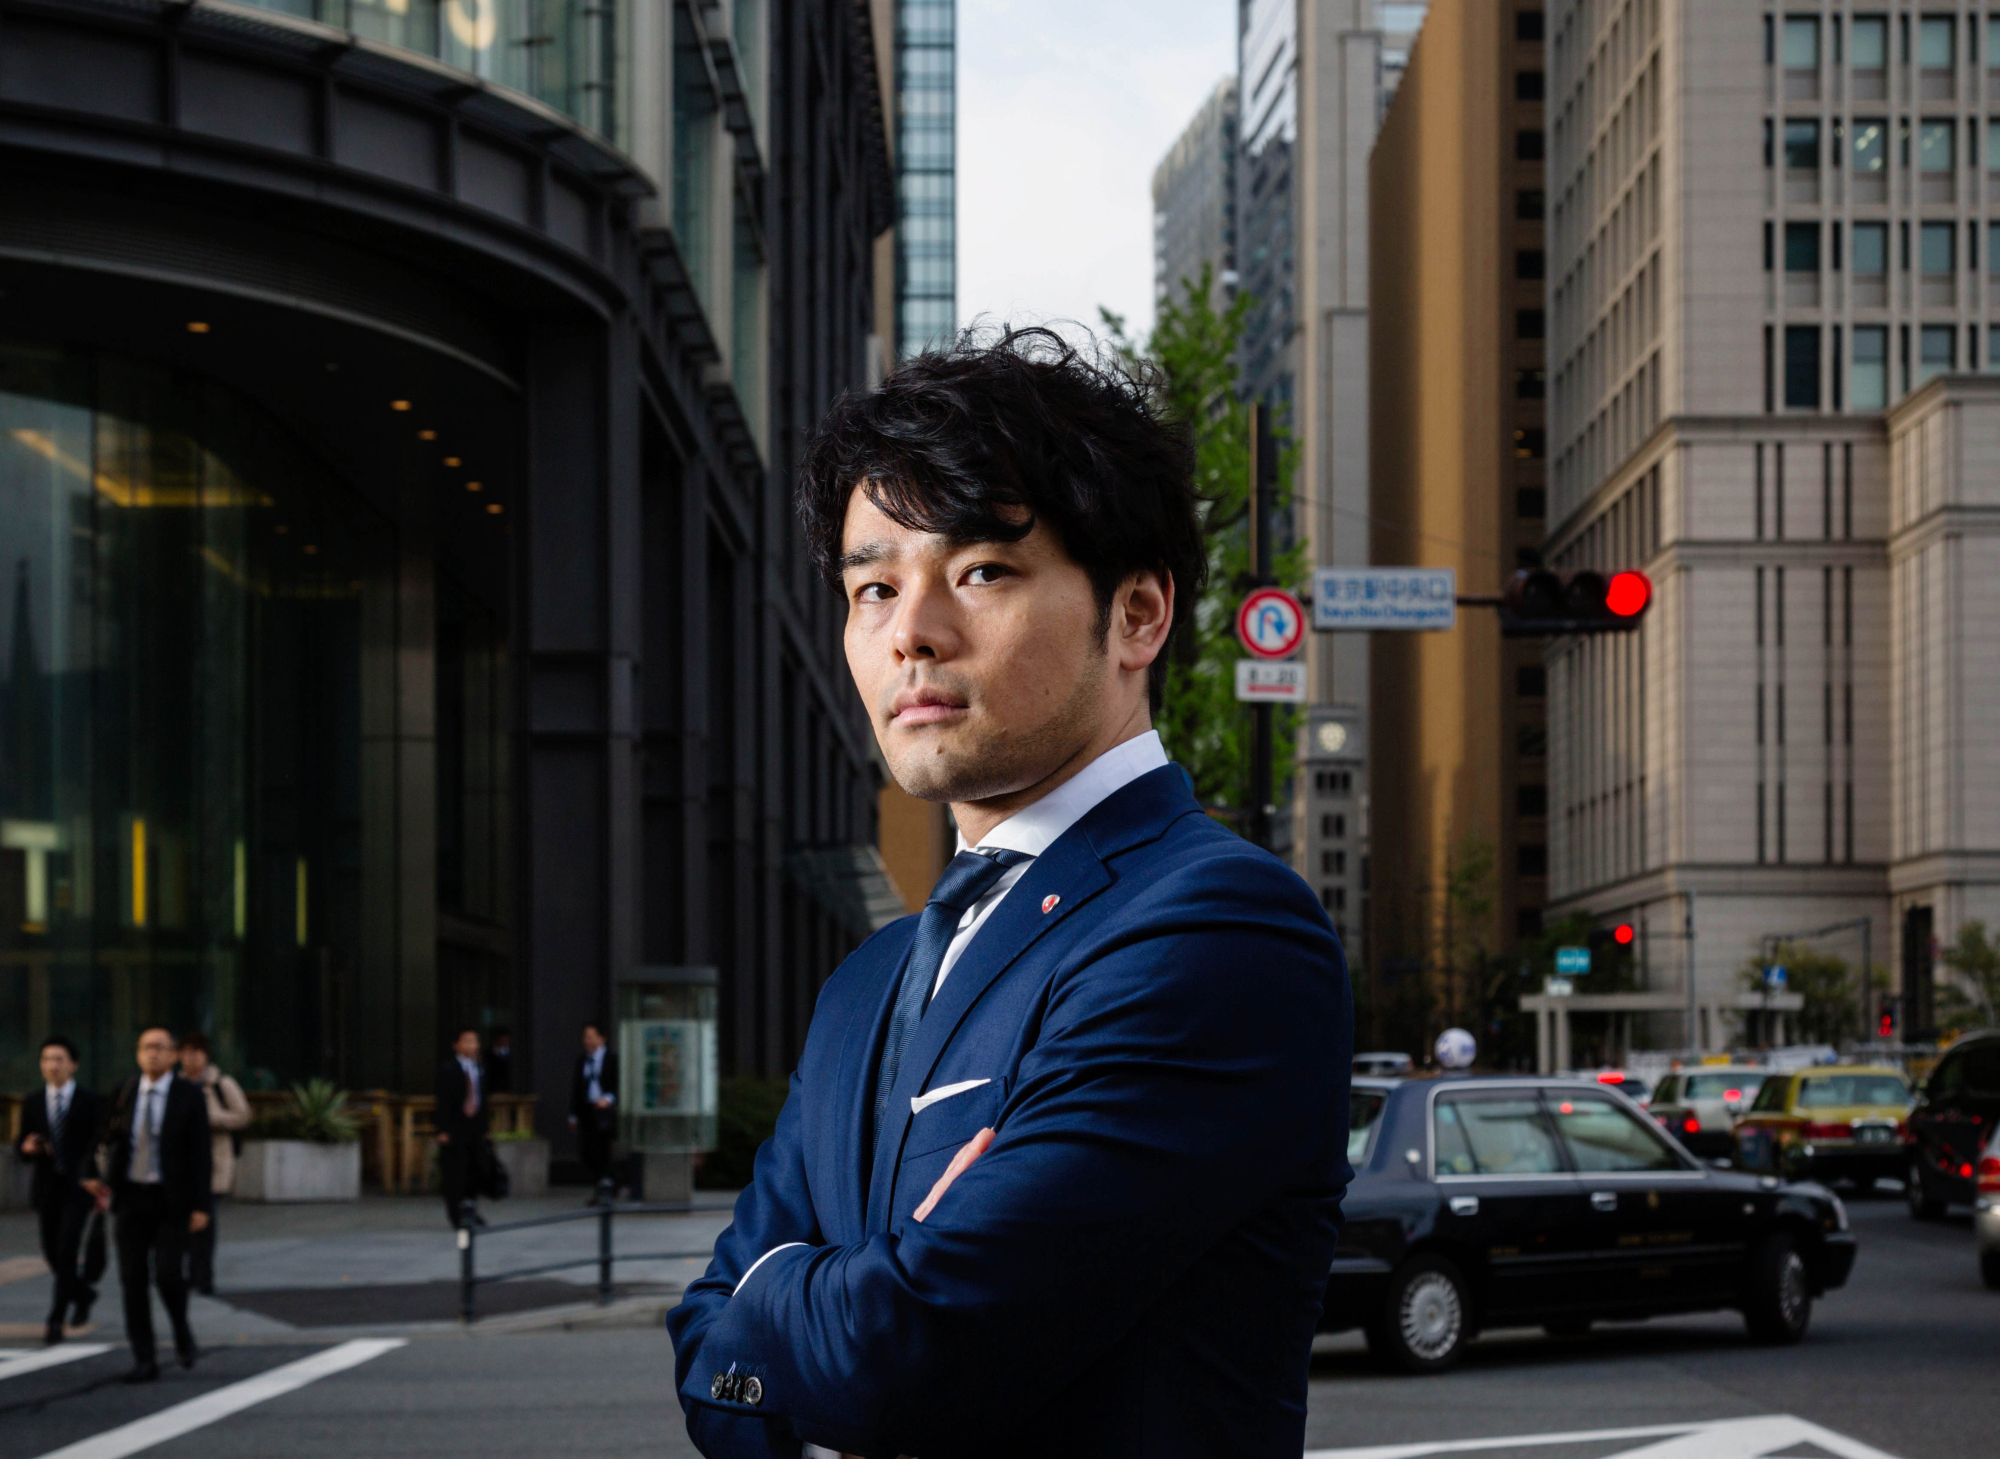 Makoto Yamada, head of equity trading at SMBC Nikko Securities, poses for a photograph in Tokyo in April. The brokerage went from a ¥500 million equity trading loss in fiscal 2011 to a ¥17 billion gain in the last fiscal year. | BLOOMBERG